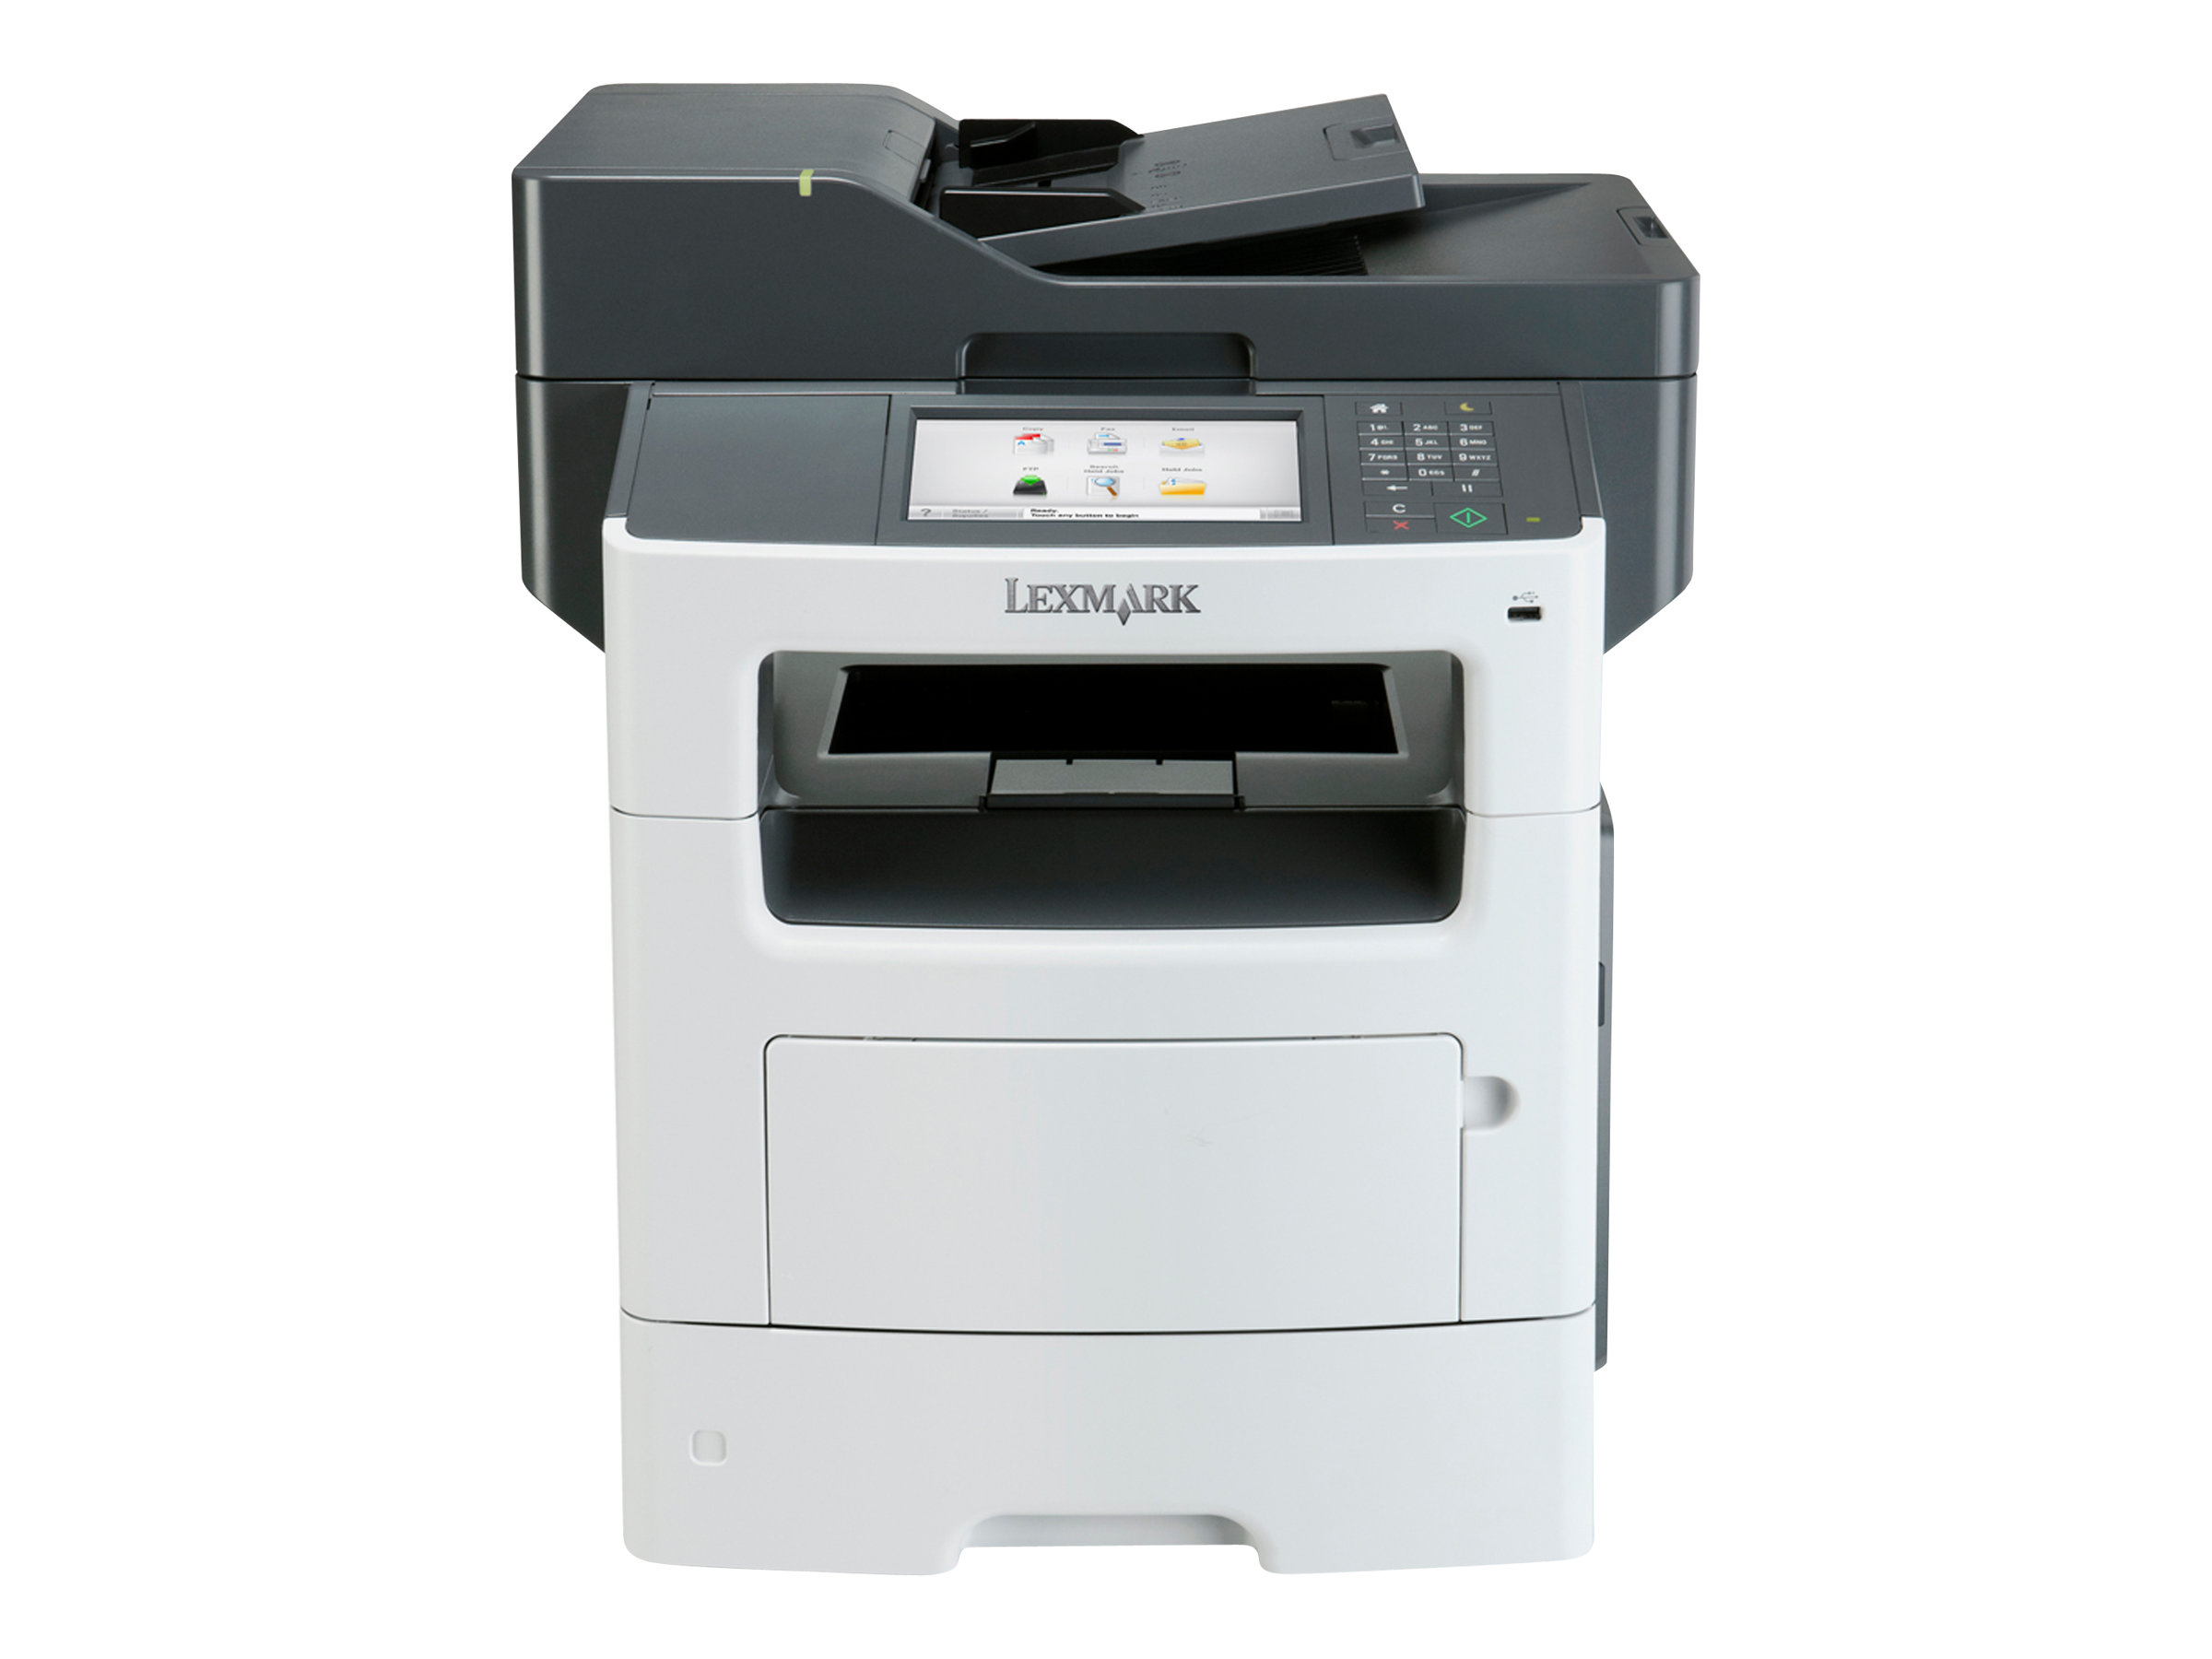 Lexmark MX611de - Multifunktionsdrucker - s/w - Laser - Legal (216 x 356 mm) (Original) - Legal (Medien)